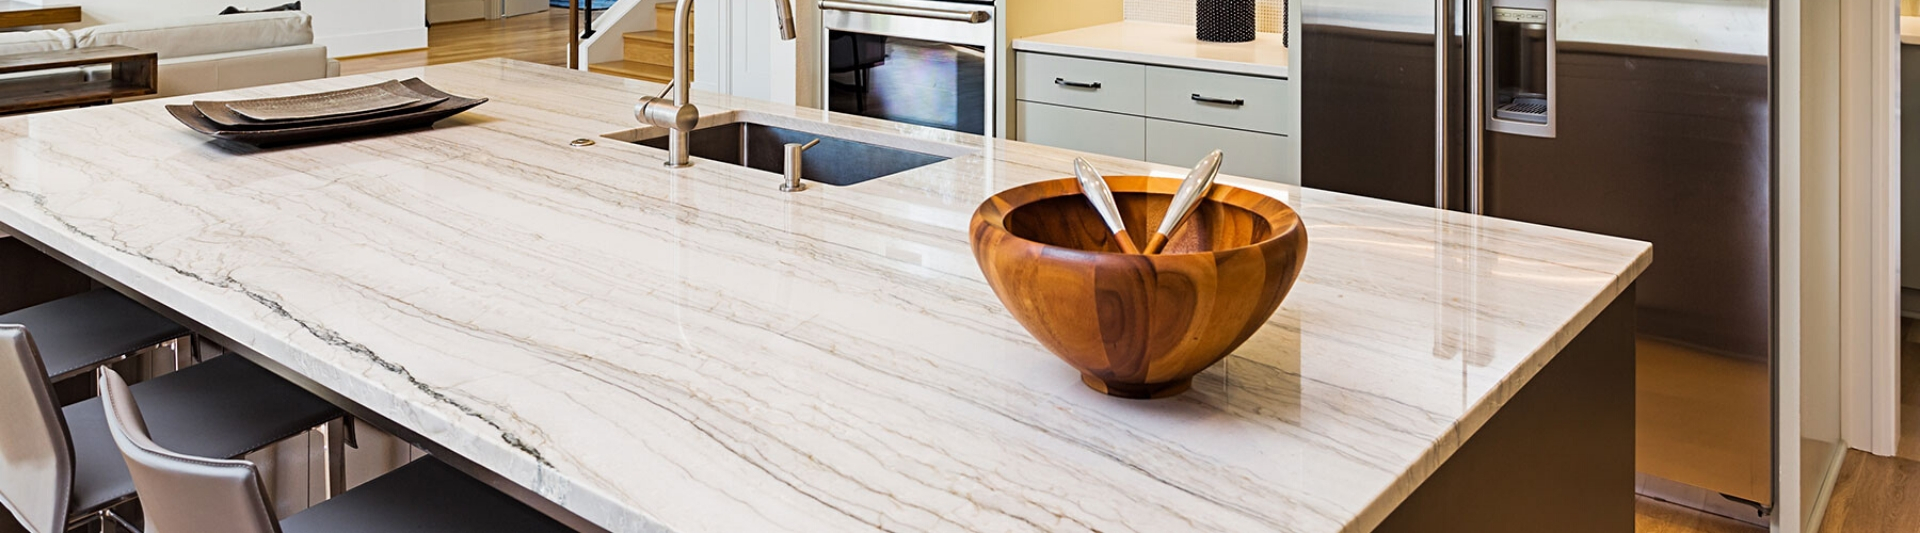 quartz countertop in kitchen with serving bowl